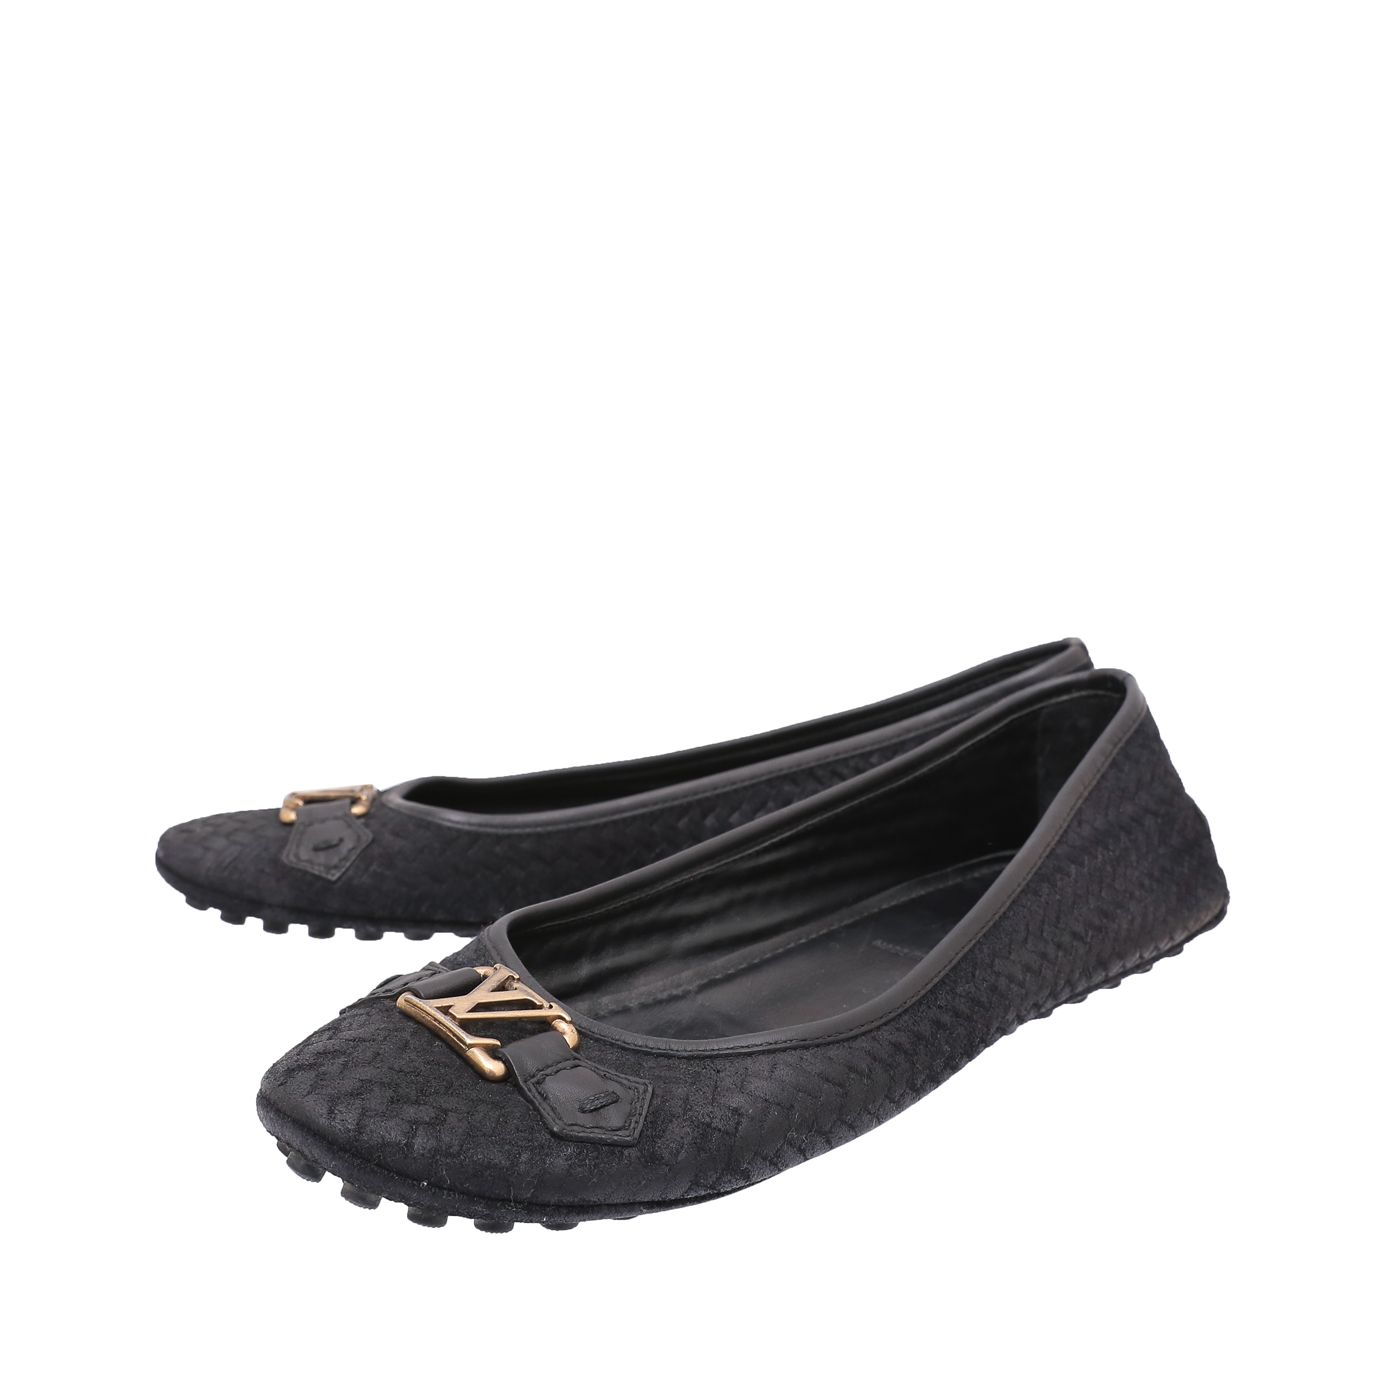 Louis Vuitton Black Woven Suede Oxford Loafers 40